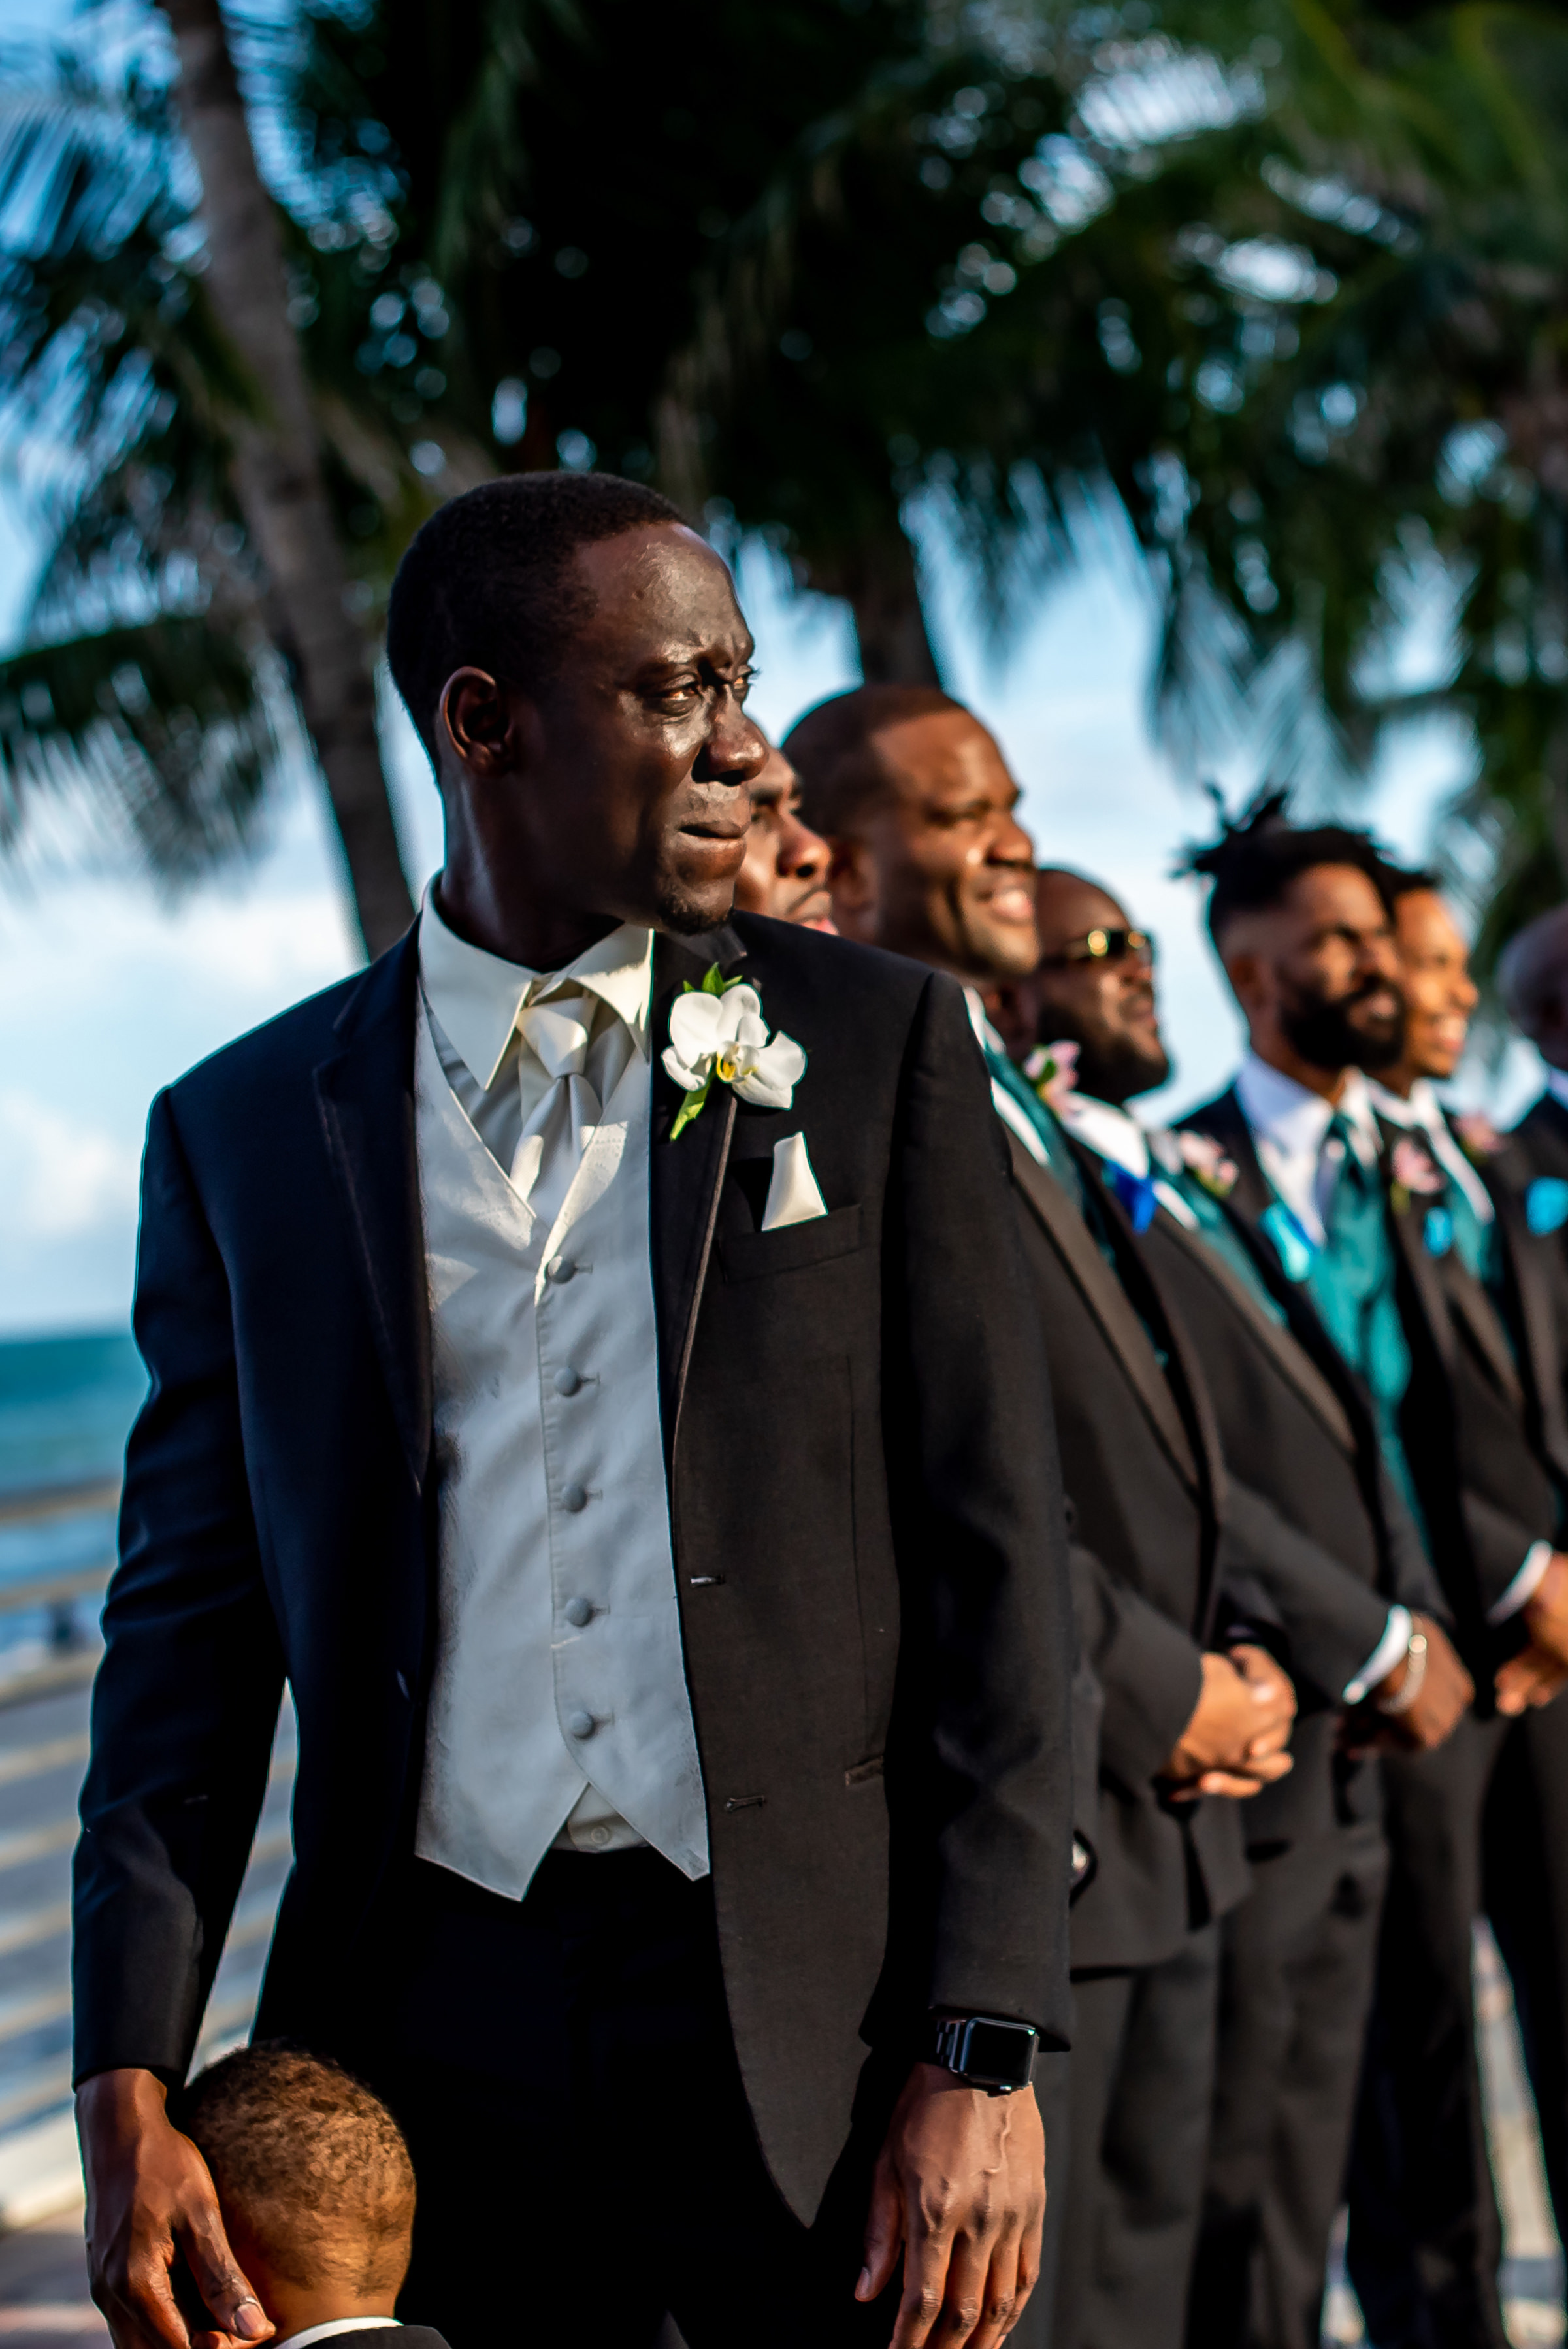 emotional-moment-for-groom-with-groomsmen-in-tropical-setting-gloria-ruth-photography